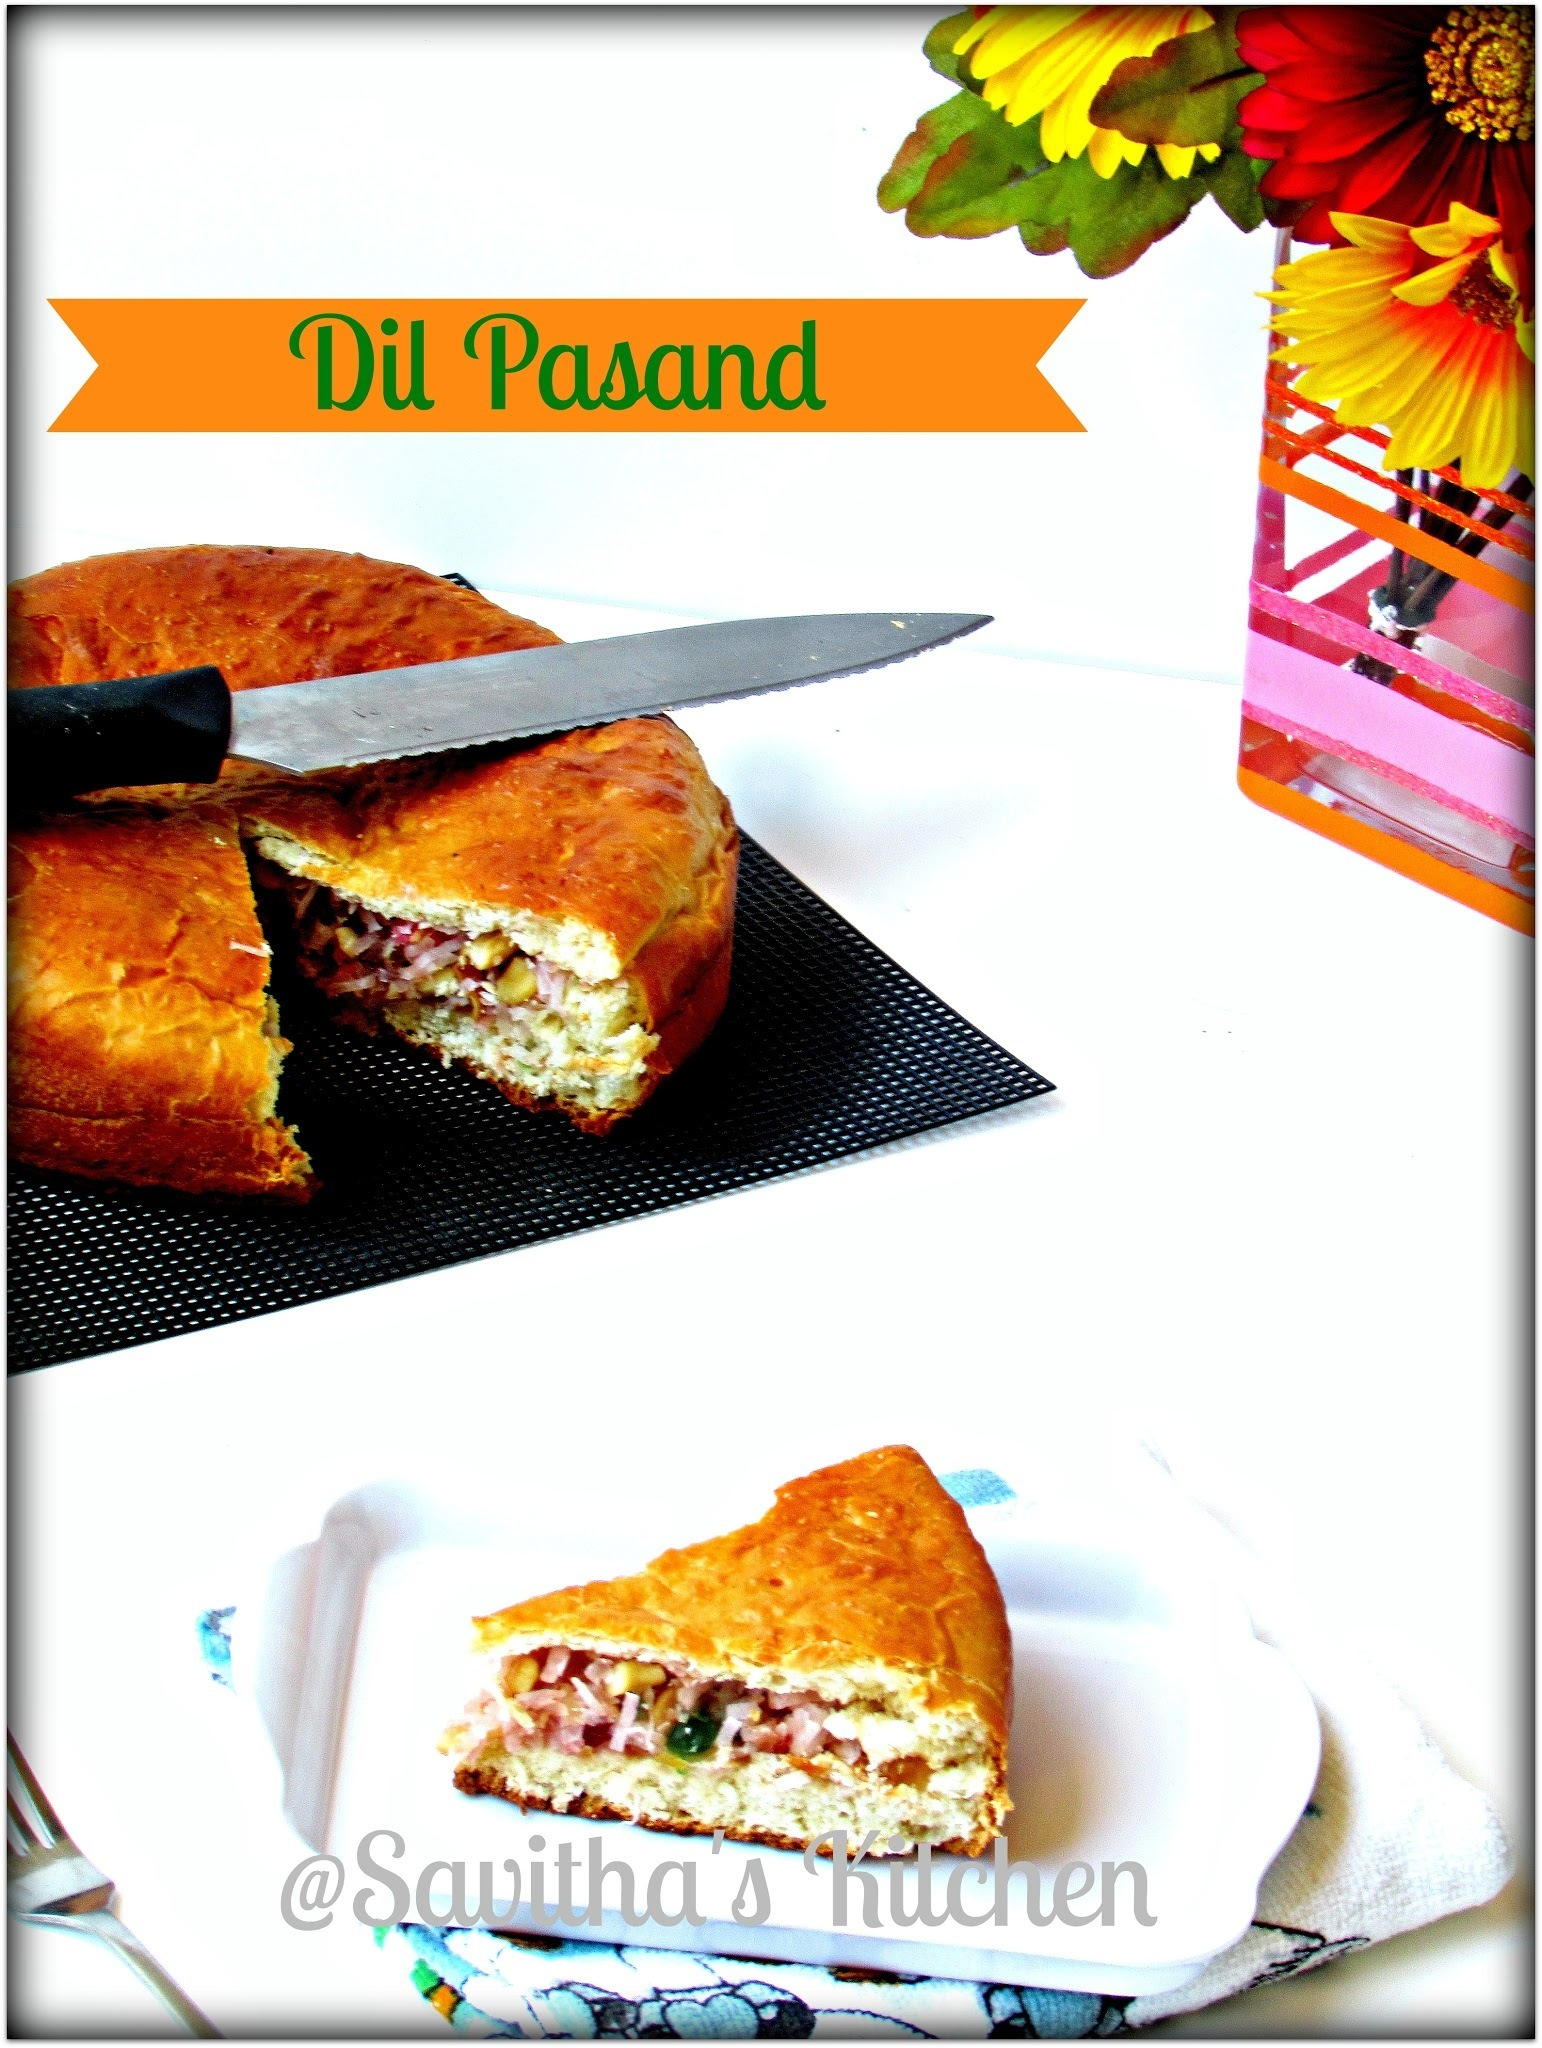 Dil Pasand / Dil Kush - Tangzhong method of making bread / Bakery style / Baking partner challenge # 8